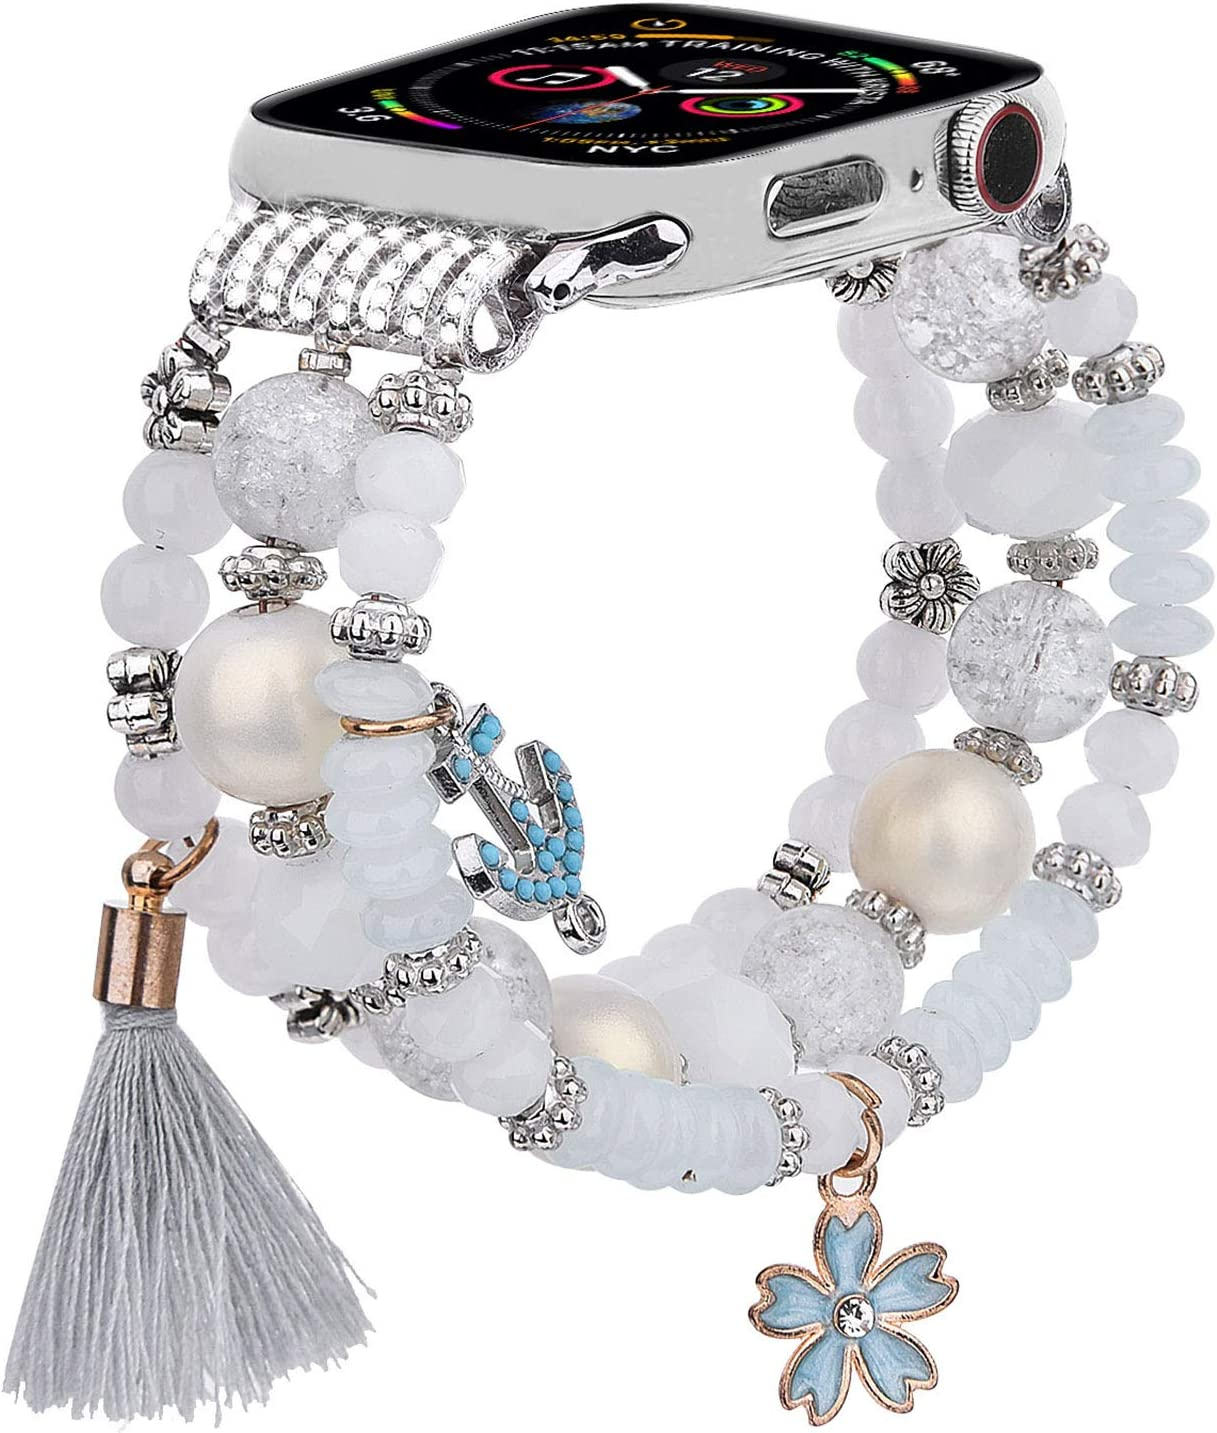 CAGOS Bracelet Beadeds Compatible with Apple Watch Band 38mm/40mm Series 6/5/4/3/2/1 Cute Handmade Fashion Elastic Stretch Beaded Strap Replacement with Stainless Steel Adapter for iWatch White